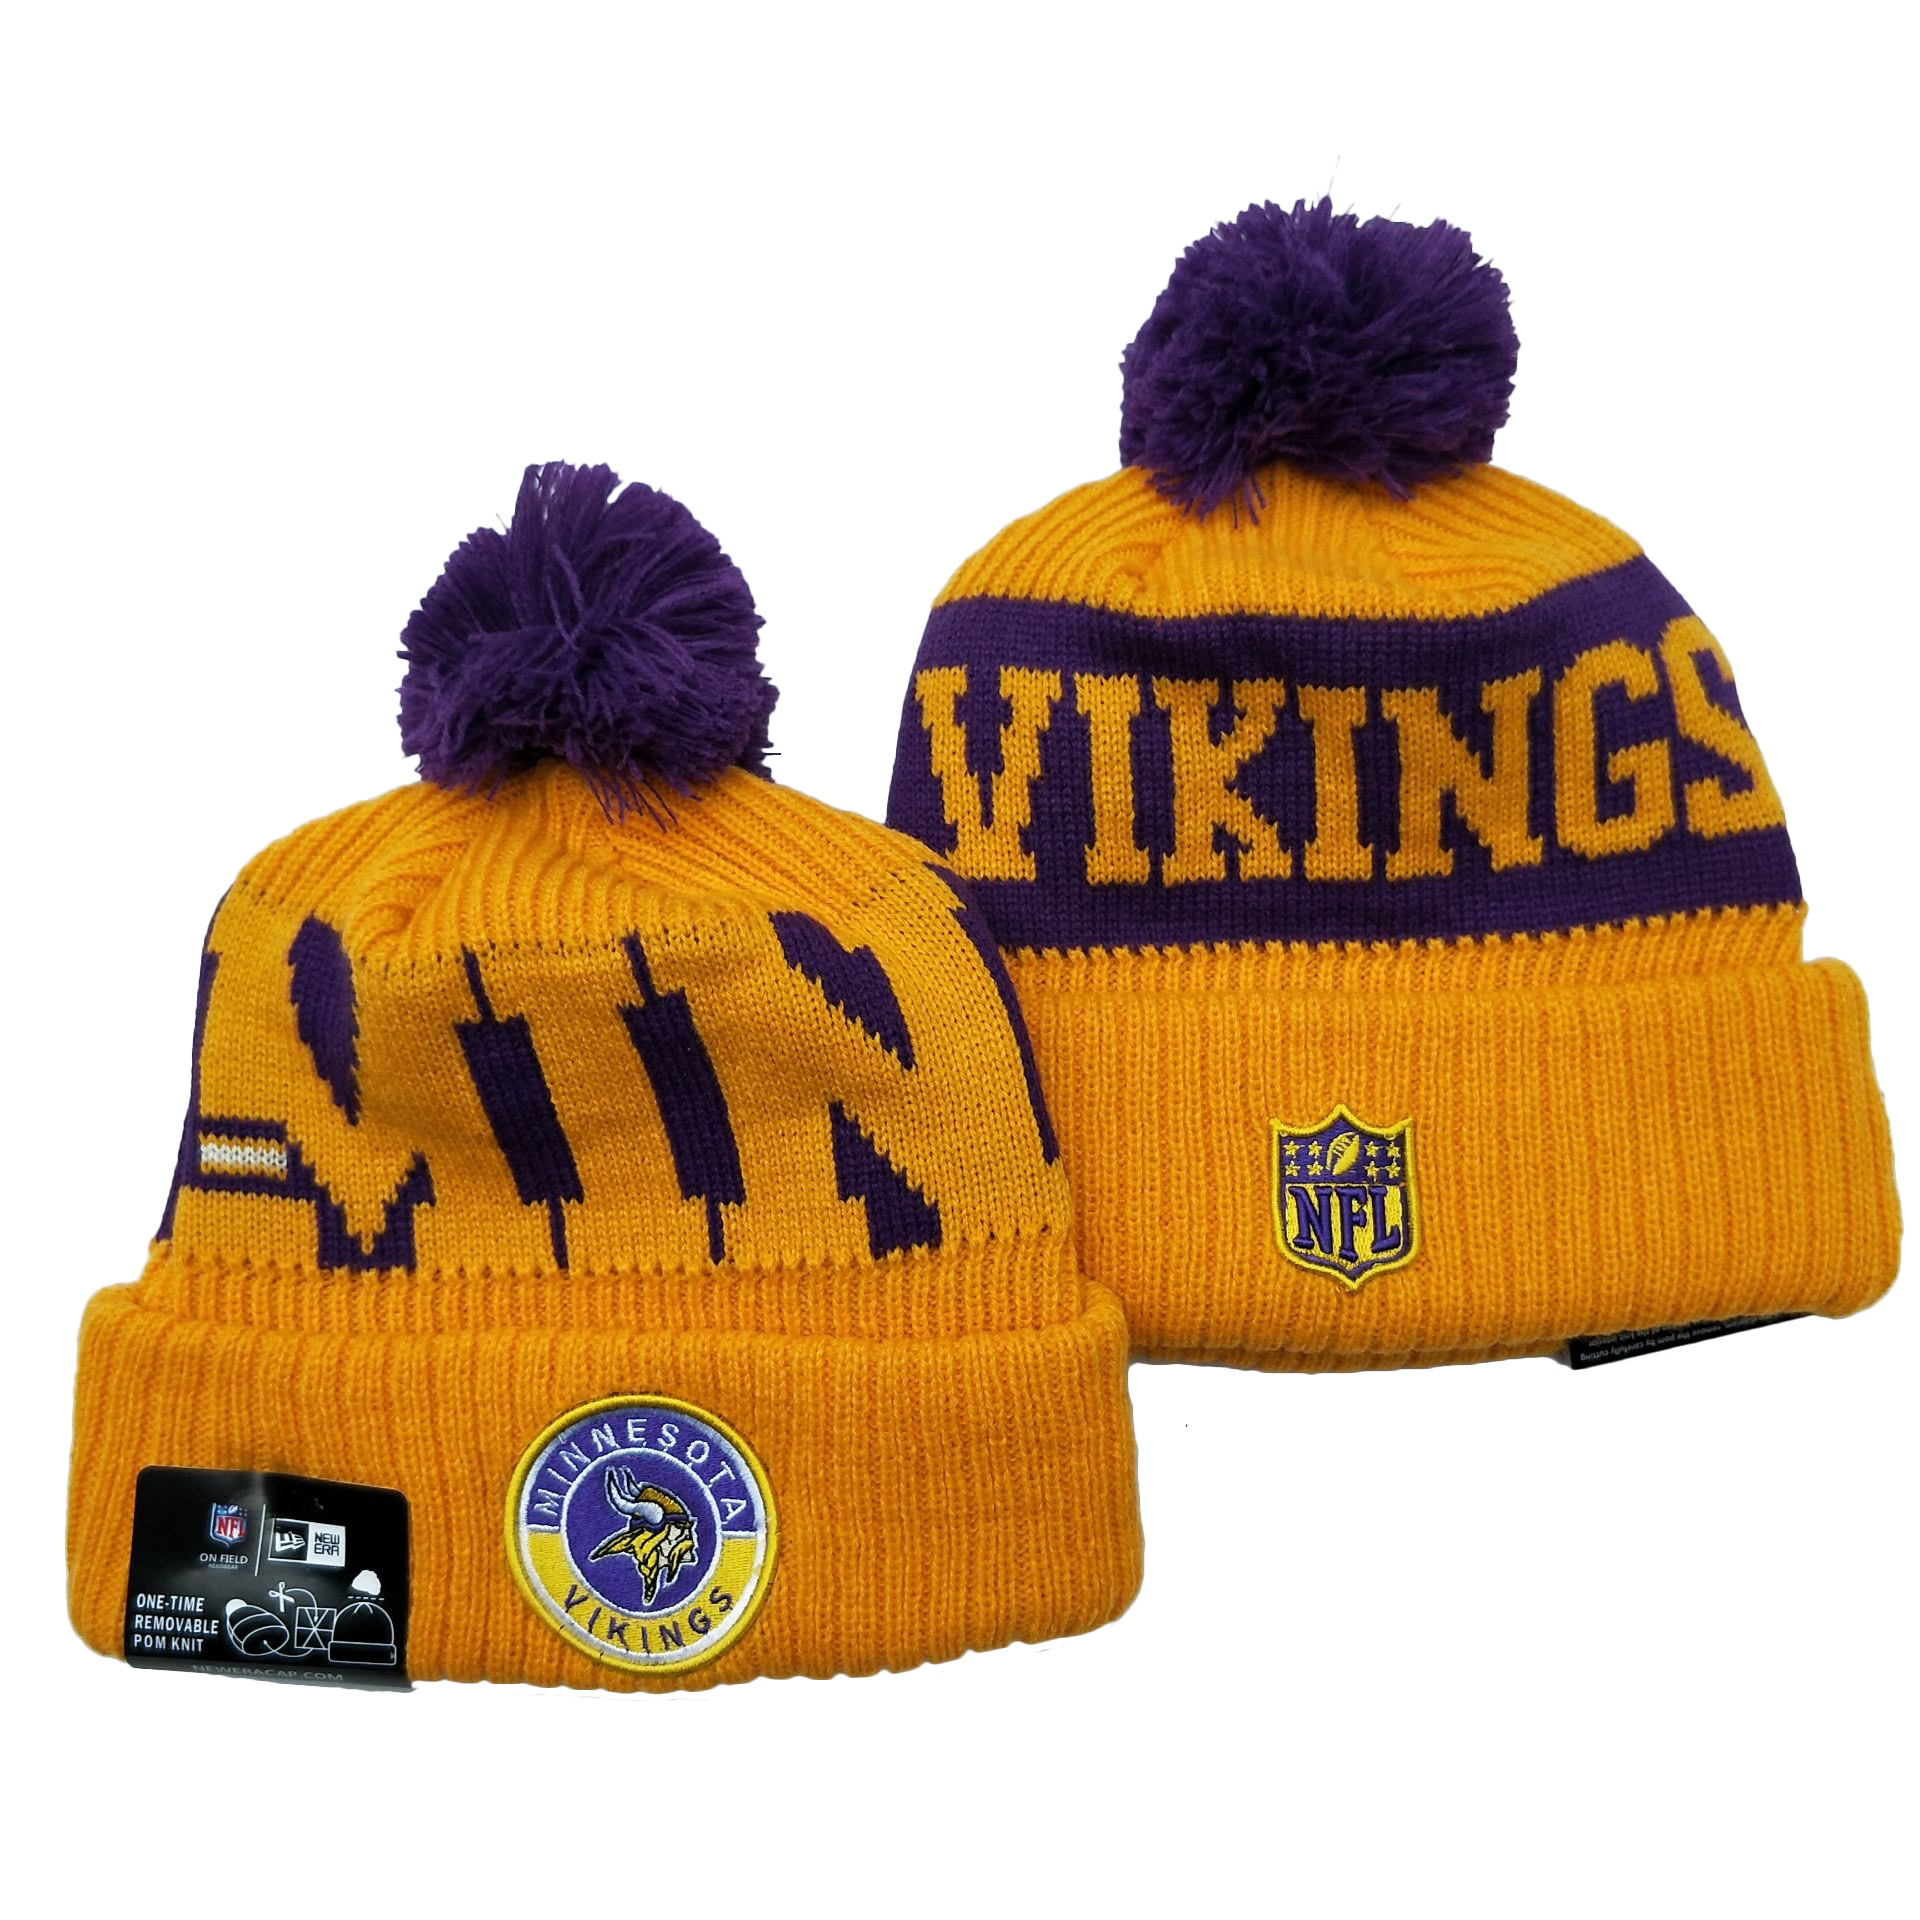 Minnesota Vikings Knit Hats 044